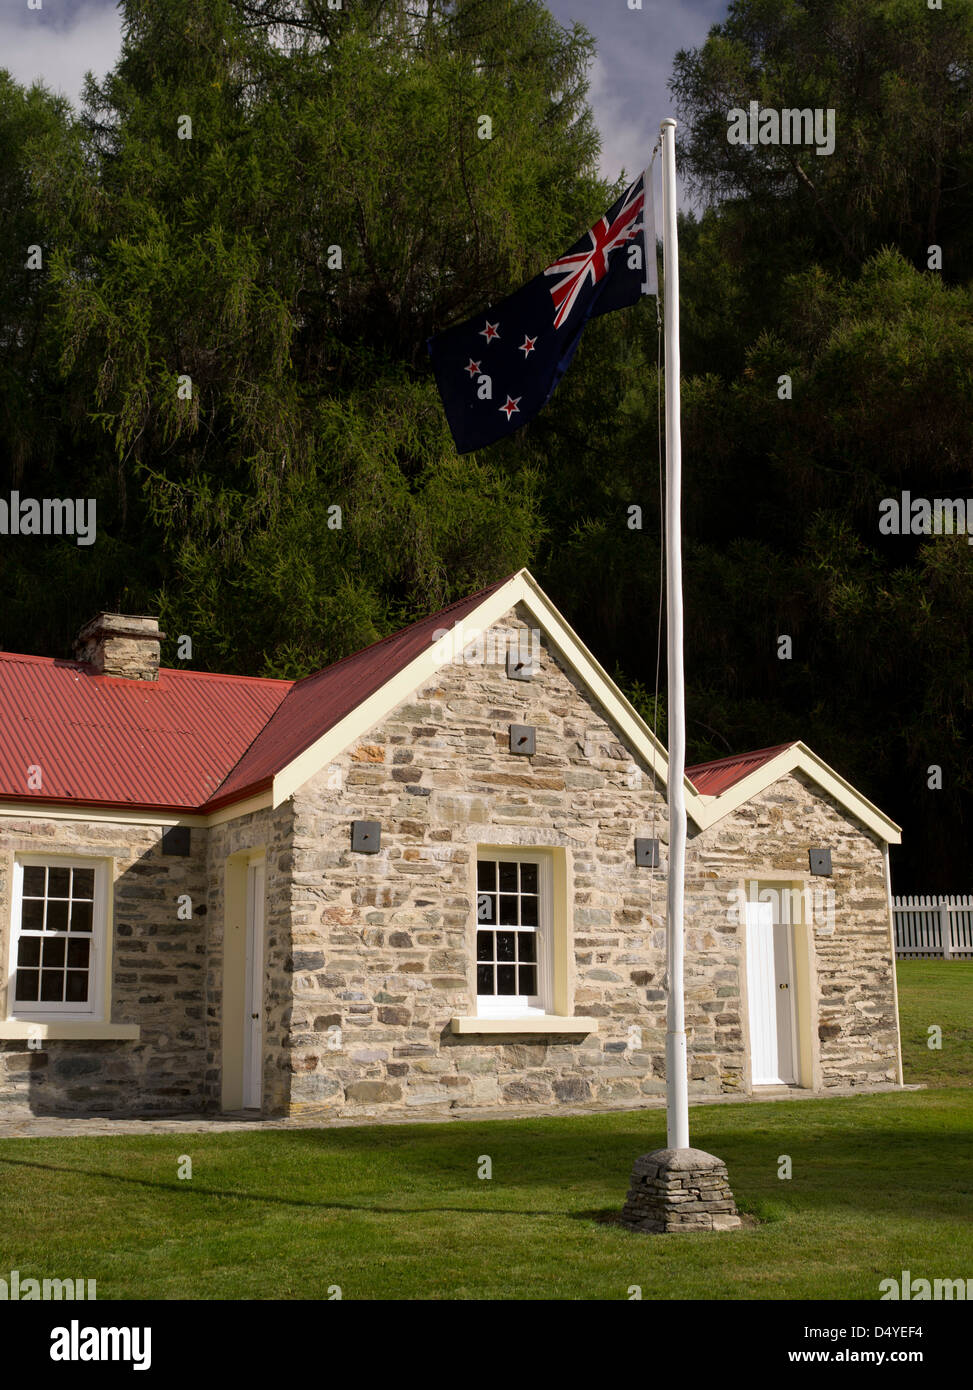 The historic Skipper's Point School and blowing NZ flag, near Queenstown, Otago, New Zealand. - Stock Image